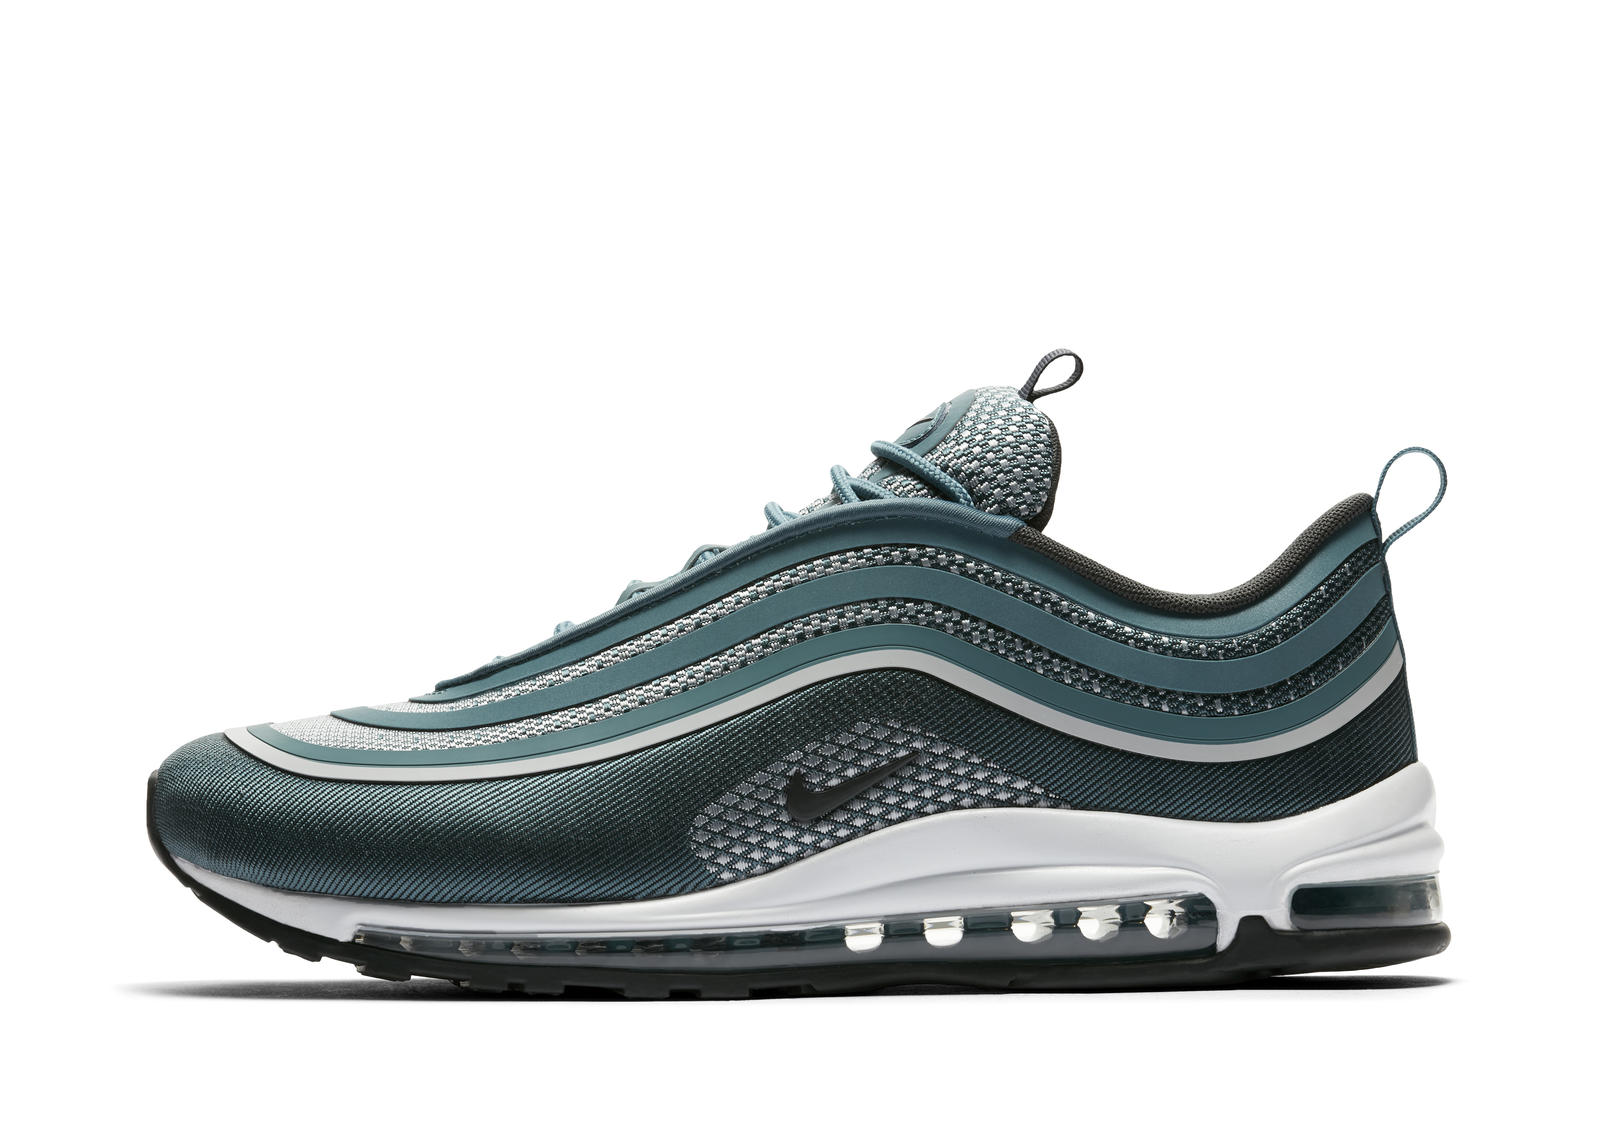 3436470a9e3de New Fall Colorways for the Air Max 97 - Nike News